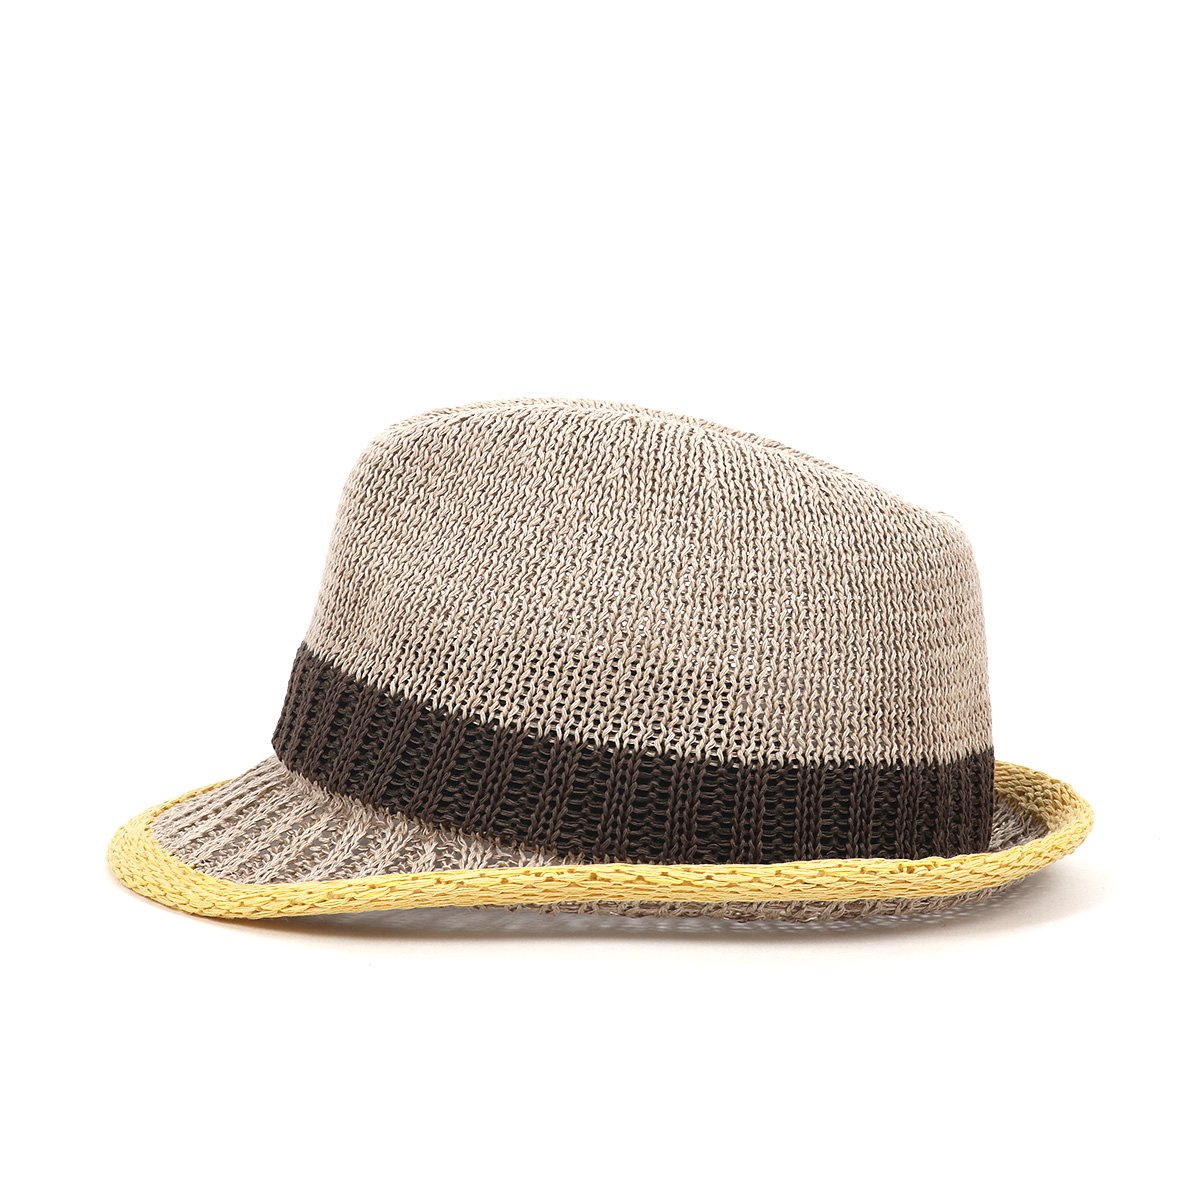 COMBINATION STRAW THERMO HAT 詳細画像2